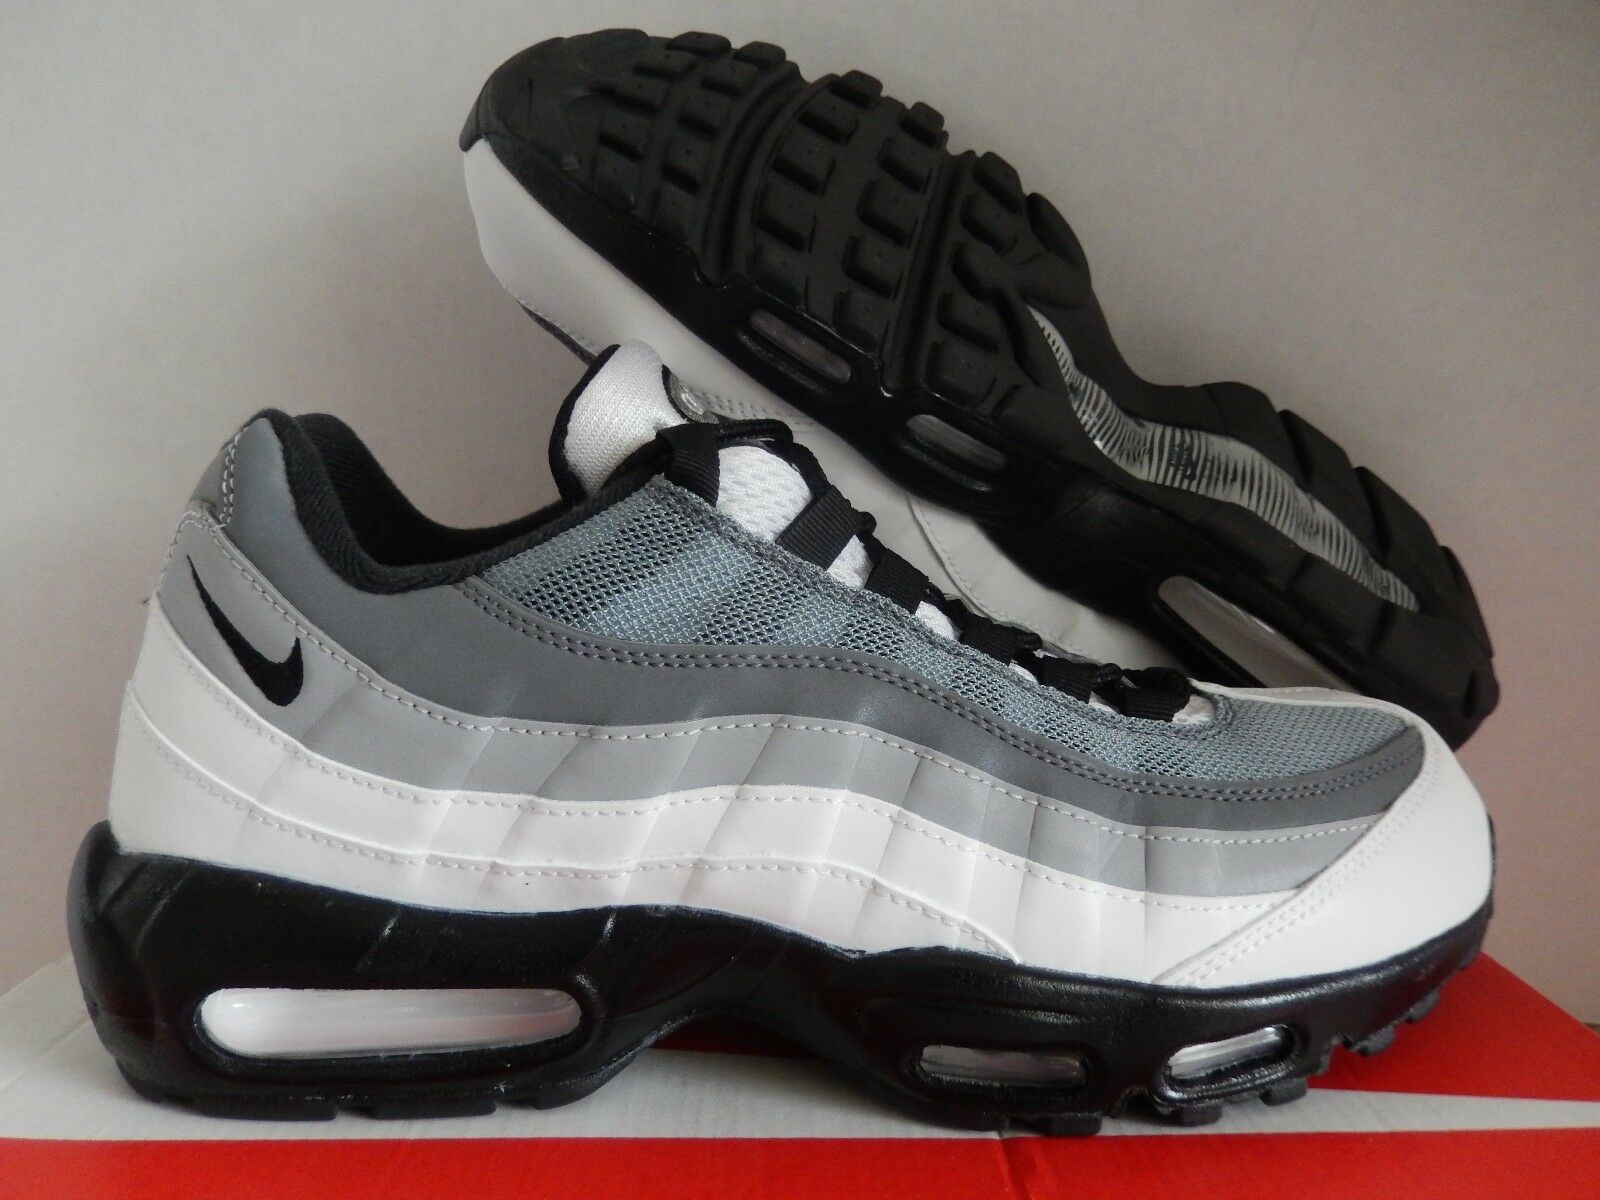 NIKE AIR MAX 95 ID GREY-LIGHT GREY-BLACK-WHITE Price reduction Special limited time